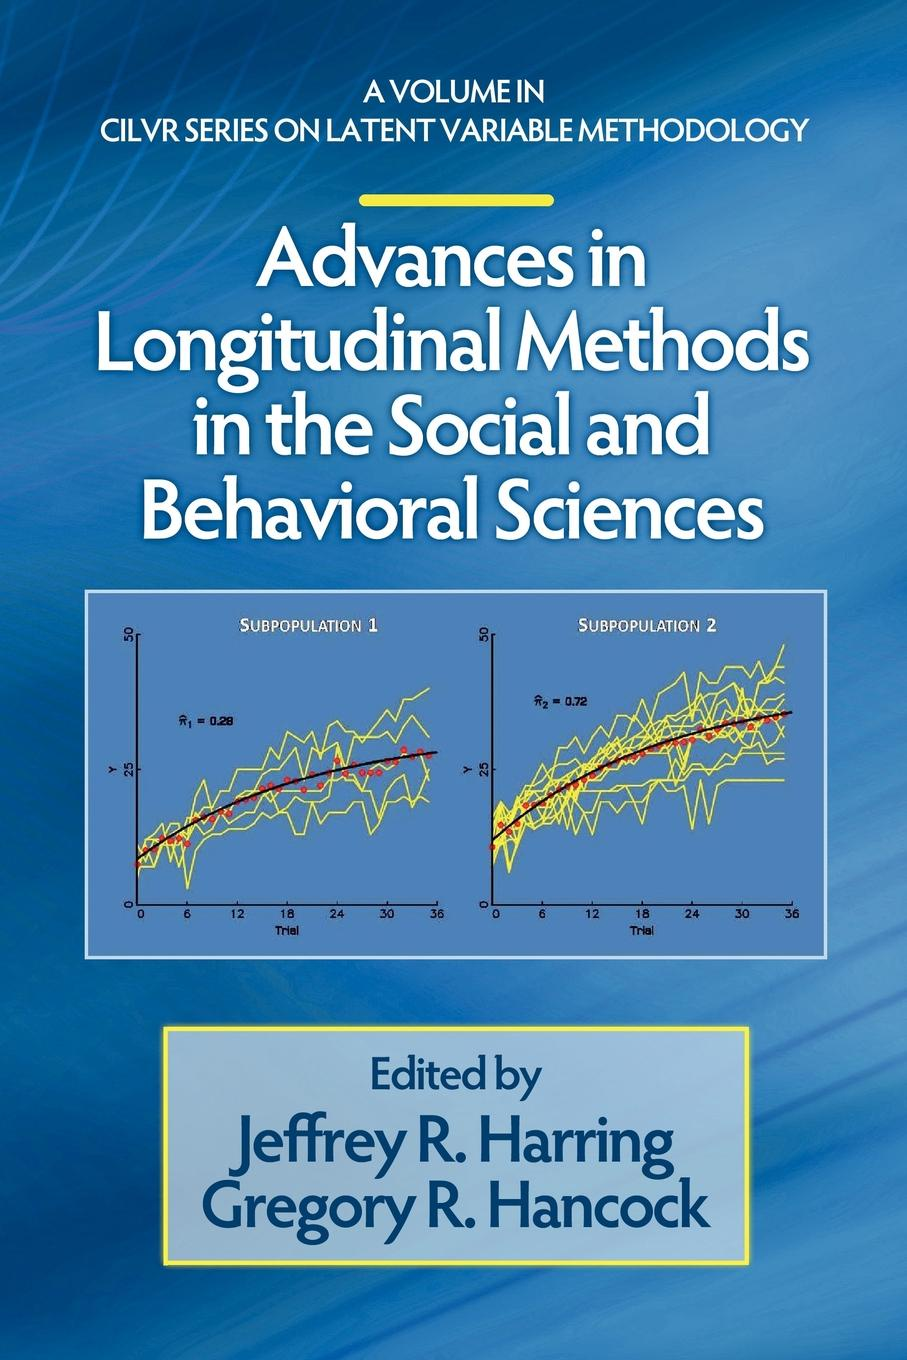 Advances in Longitudinal Methods in the Social and Behavioral Sciences michael albers j introduction to quantitative data analysis in the behavioral and social sciences